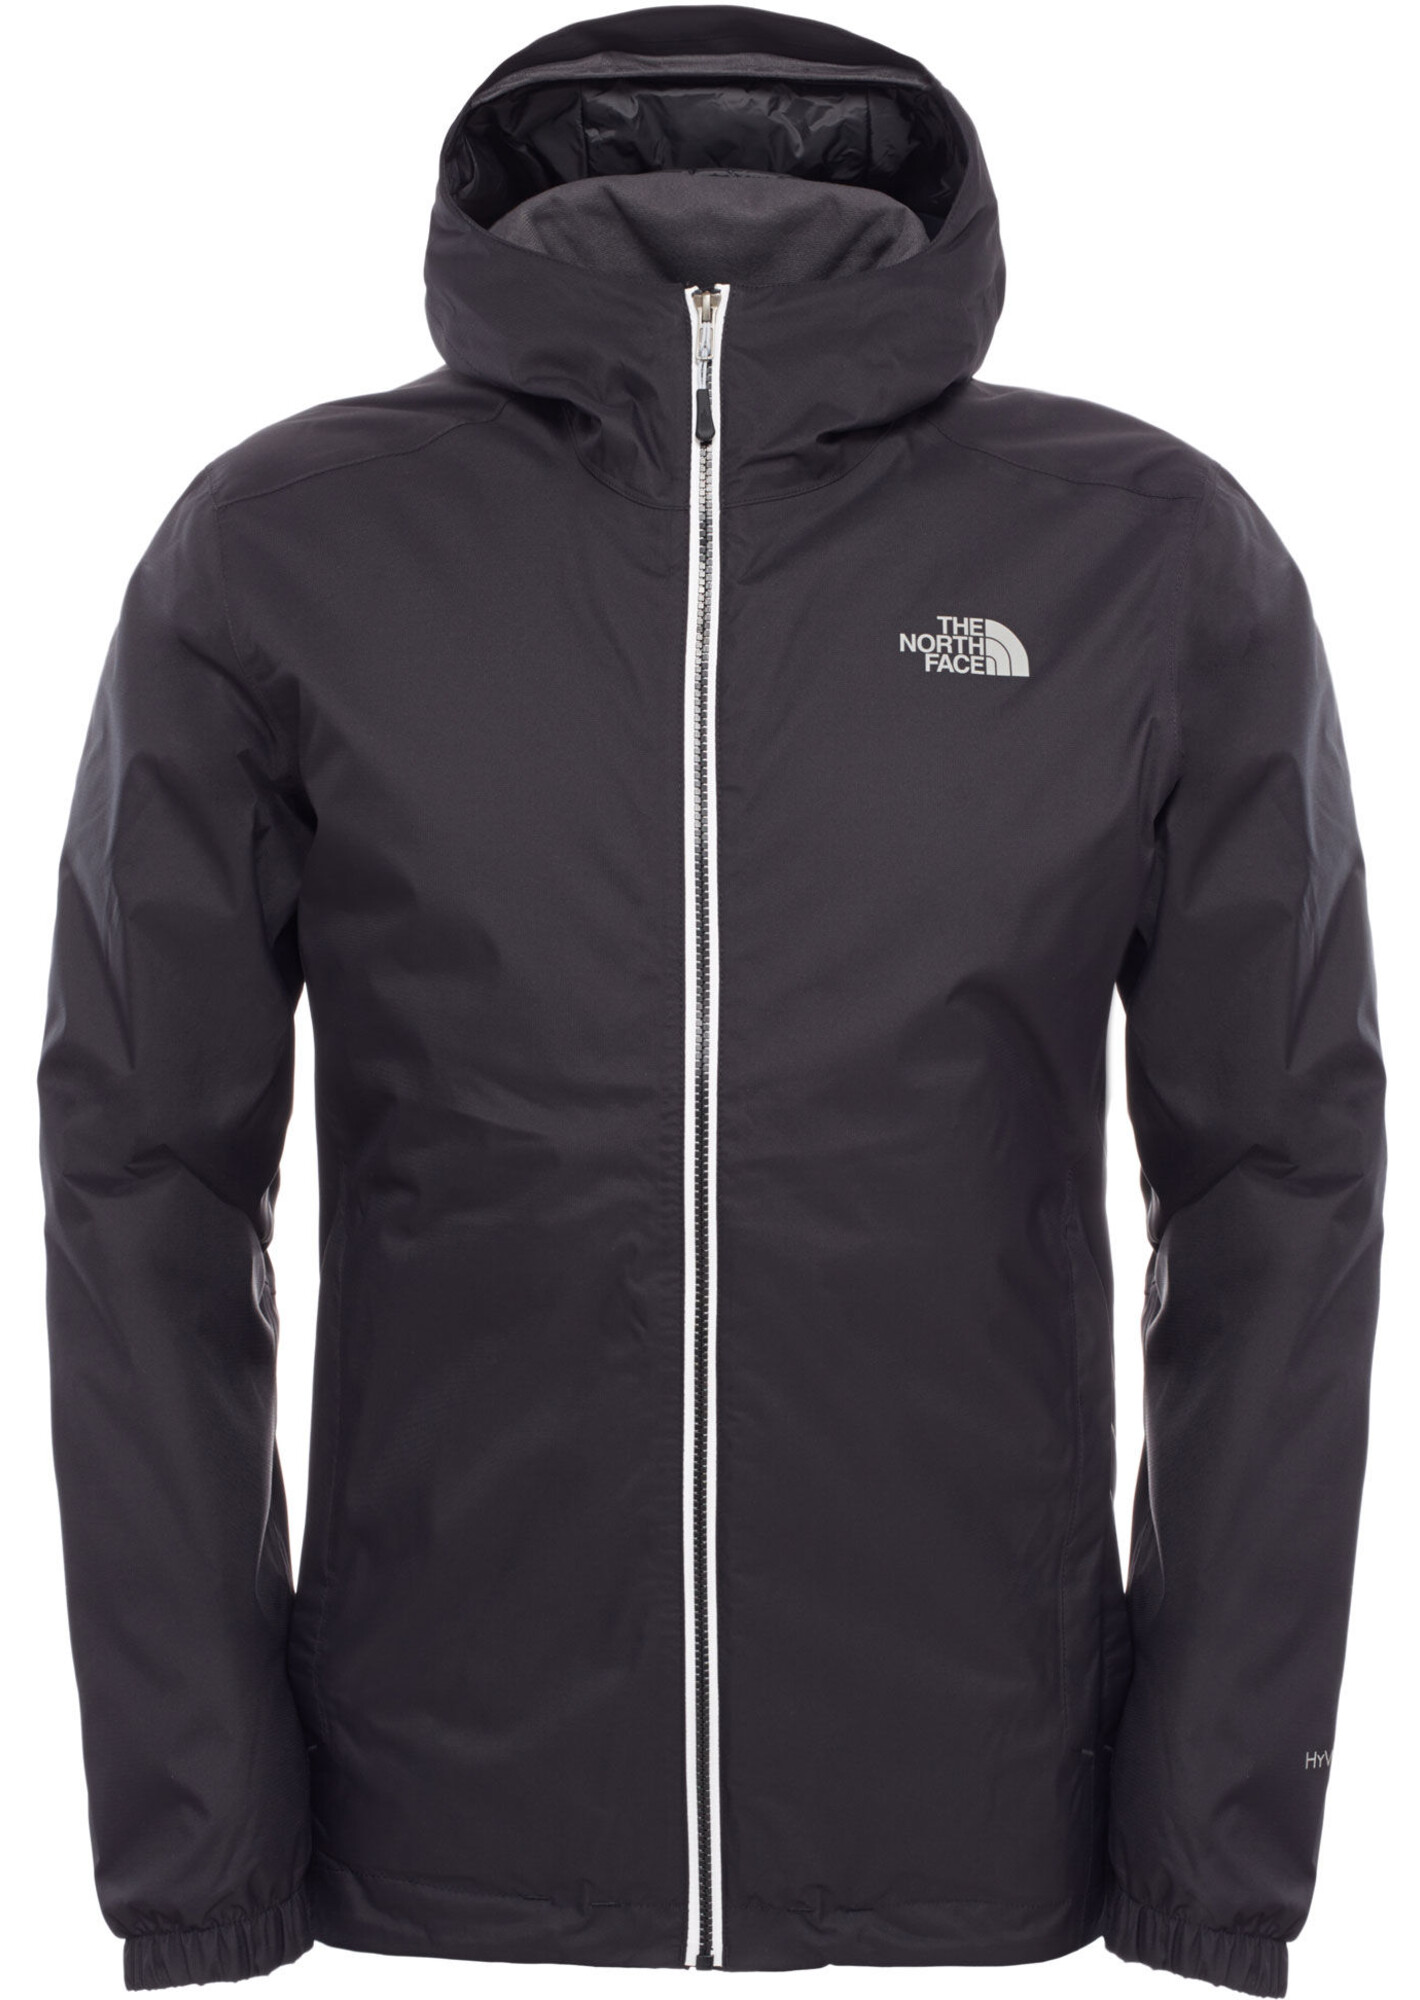 The North Face Quest Insulated Jacket Men Tnf Black Campz Ch